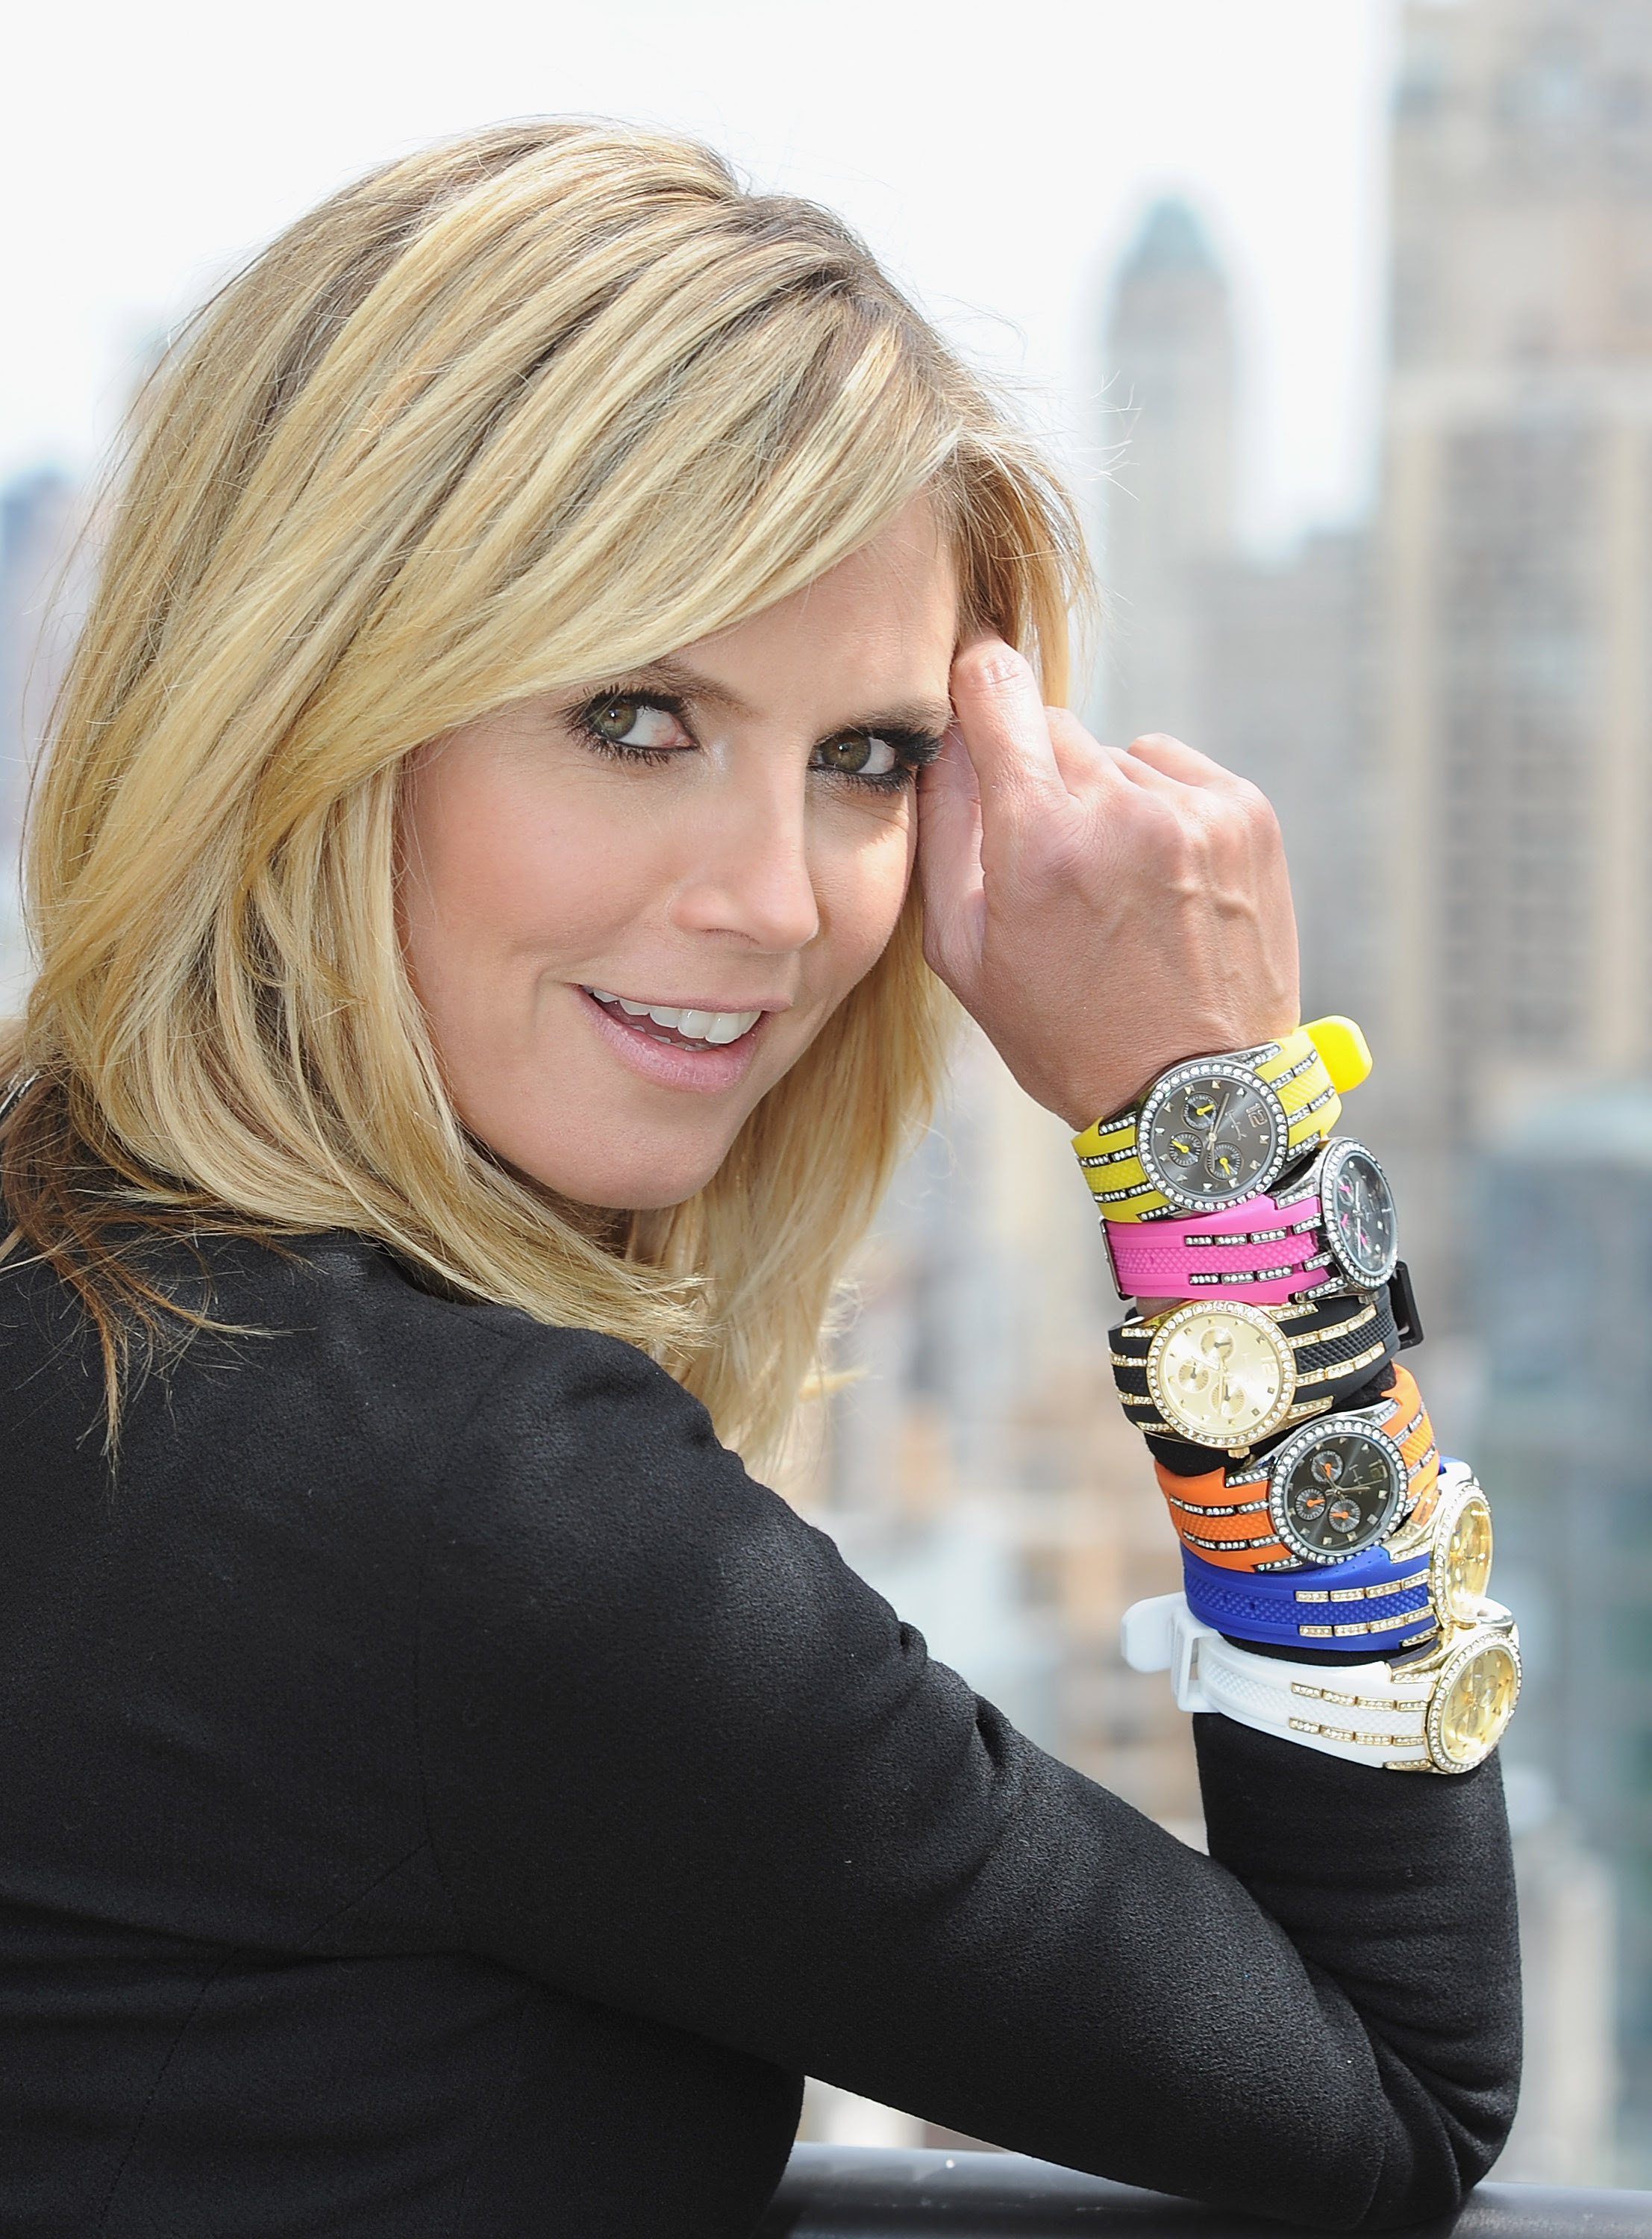 Heidi Klum at the Hudson Hotel, shows off her stacked watches and bangles. (Dimitrios Kambouris/Getty Images for QVC)